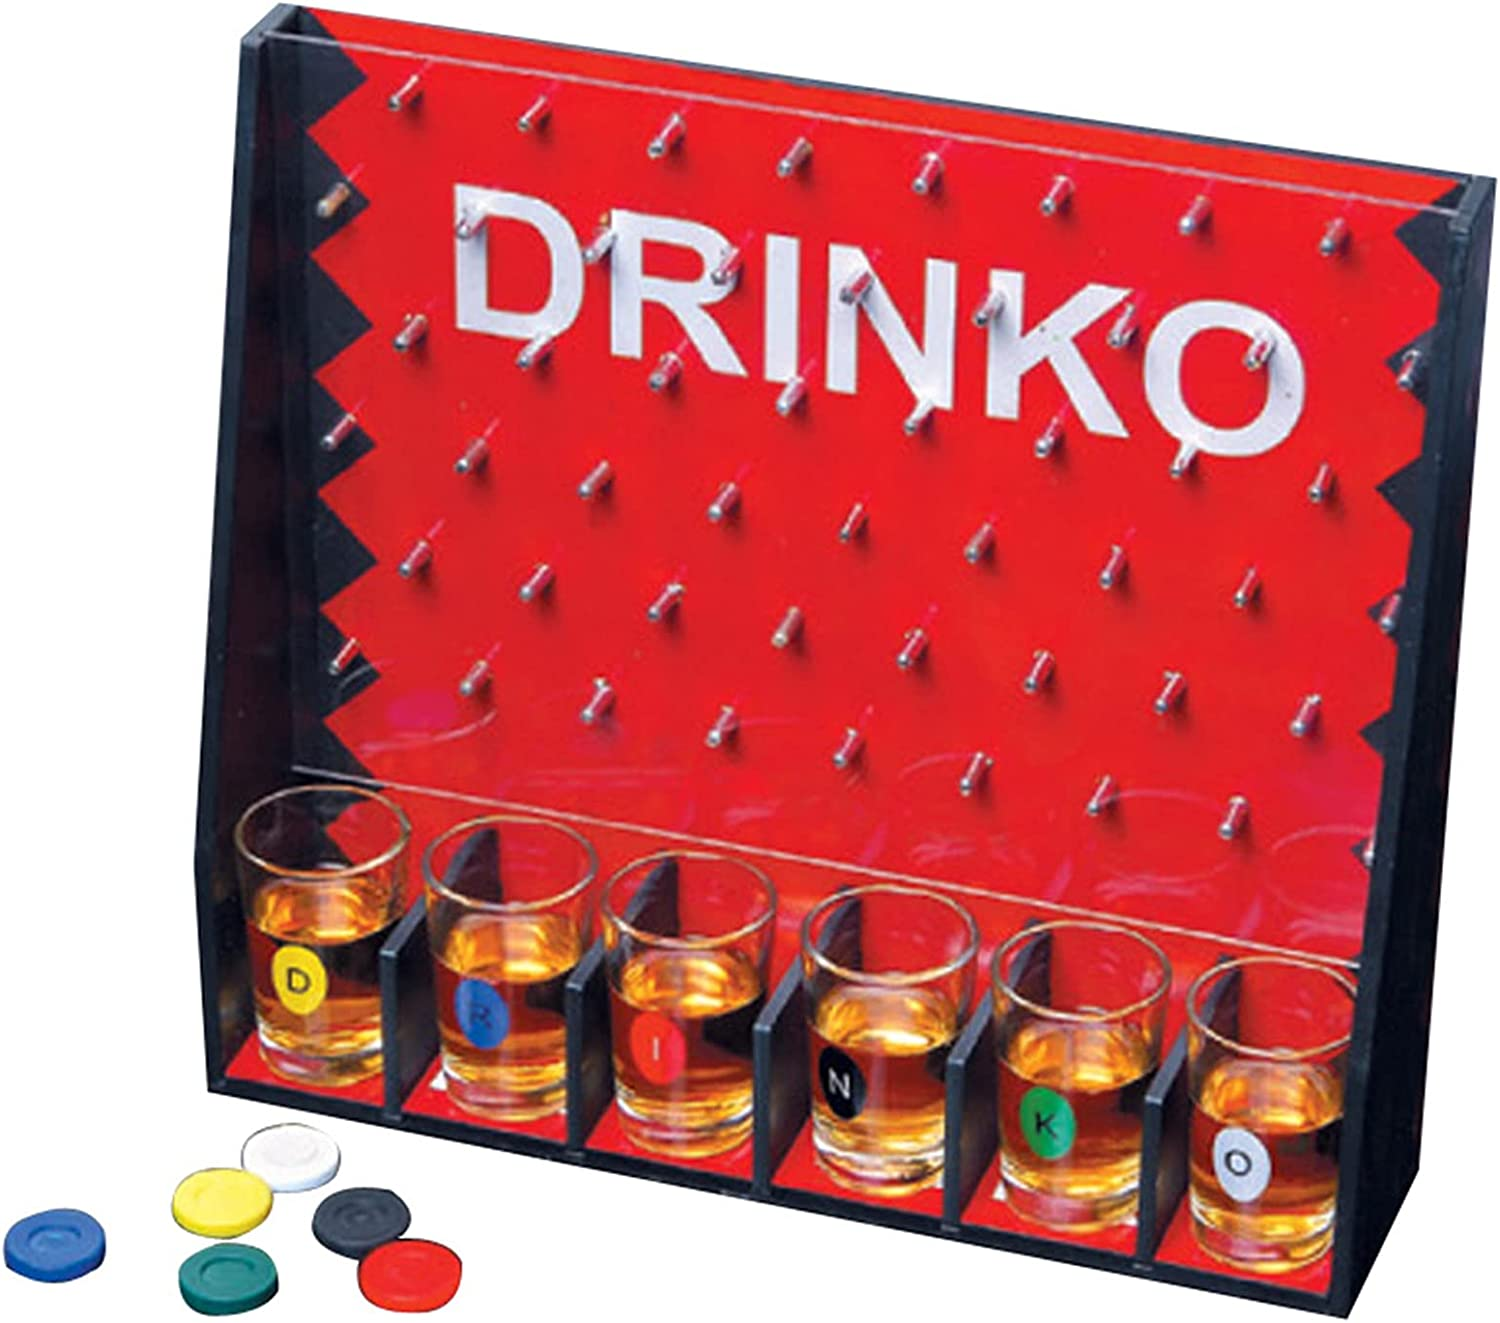 YZILXY Bar Drinking Toy Game Turntable National uniform free shipping Interesting Fixed price for sale - Ga